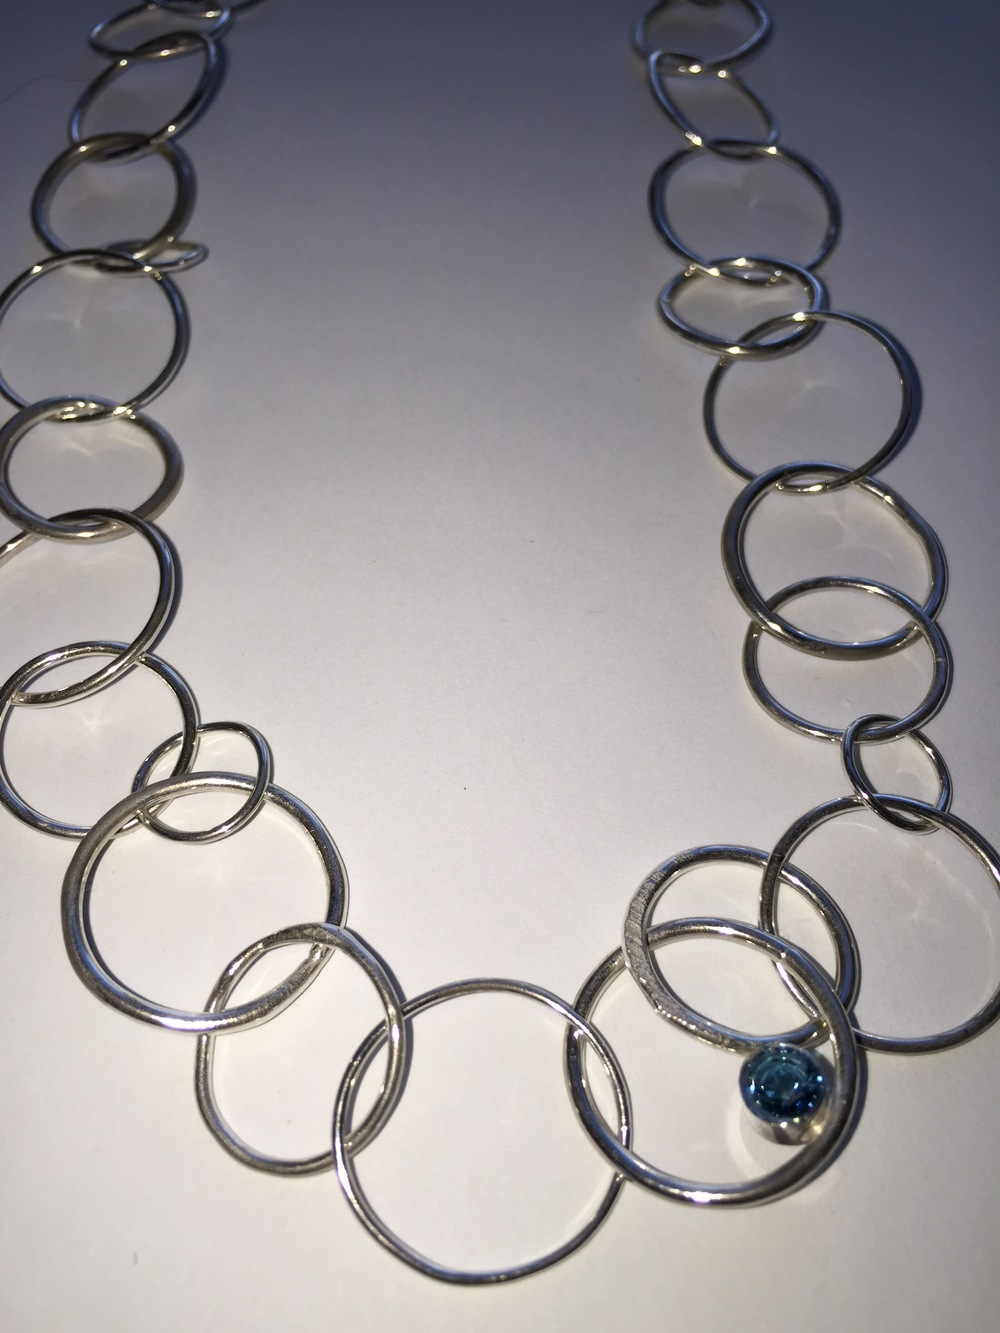 Hammered & Fused Argentium Silver Chain Necklace w/ blue Topaz, from 'Chain' Collection